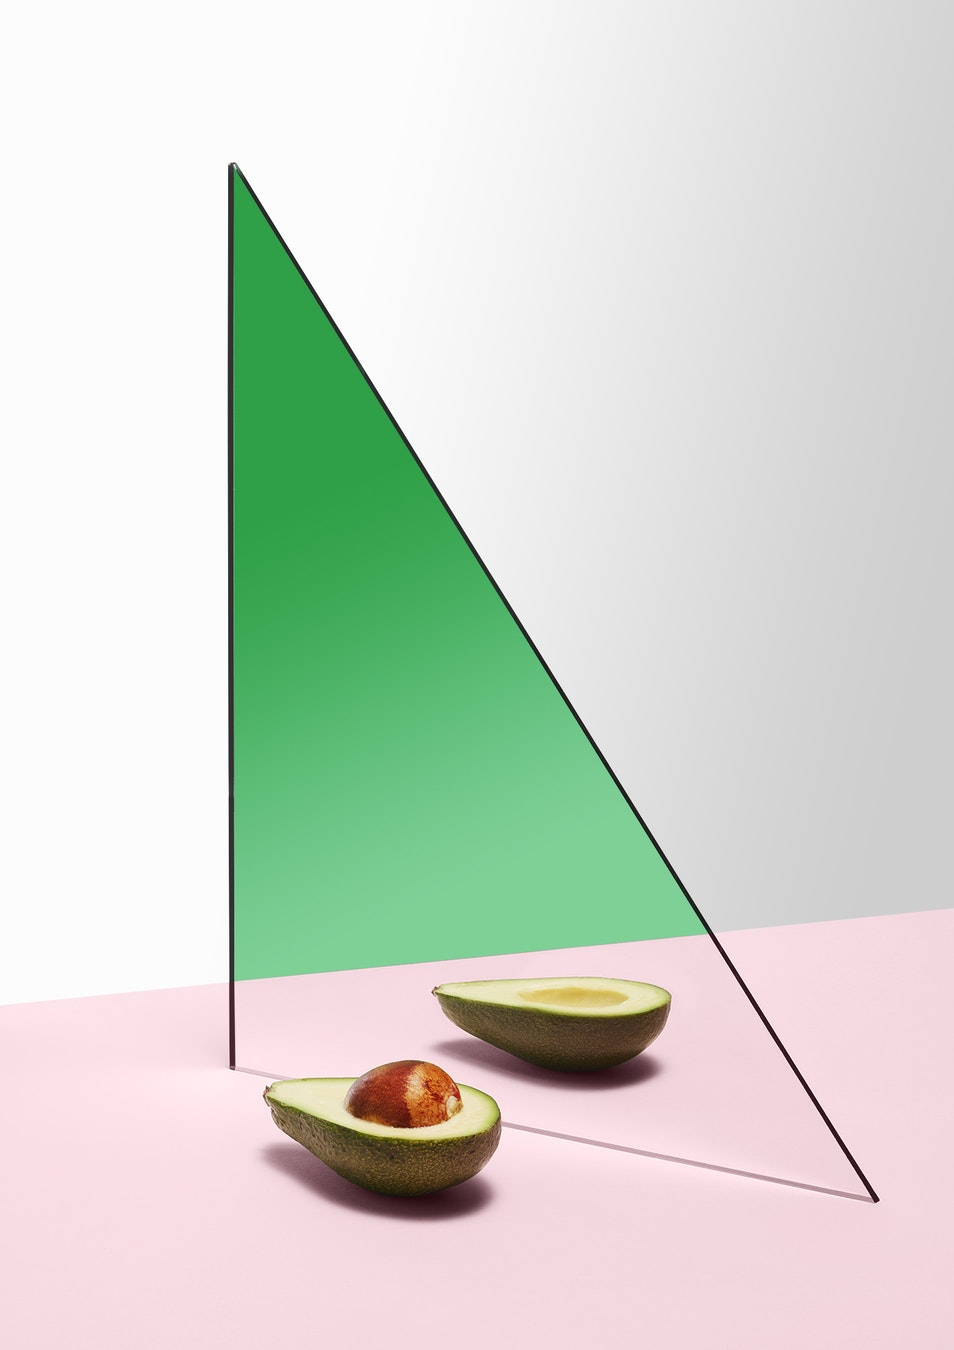 25-chris_hoare_Avocado_mirror